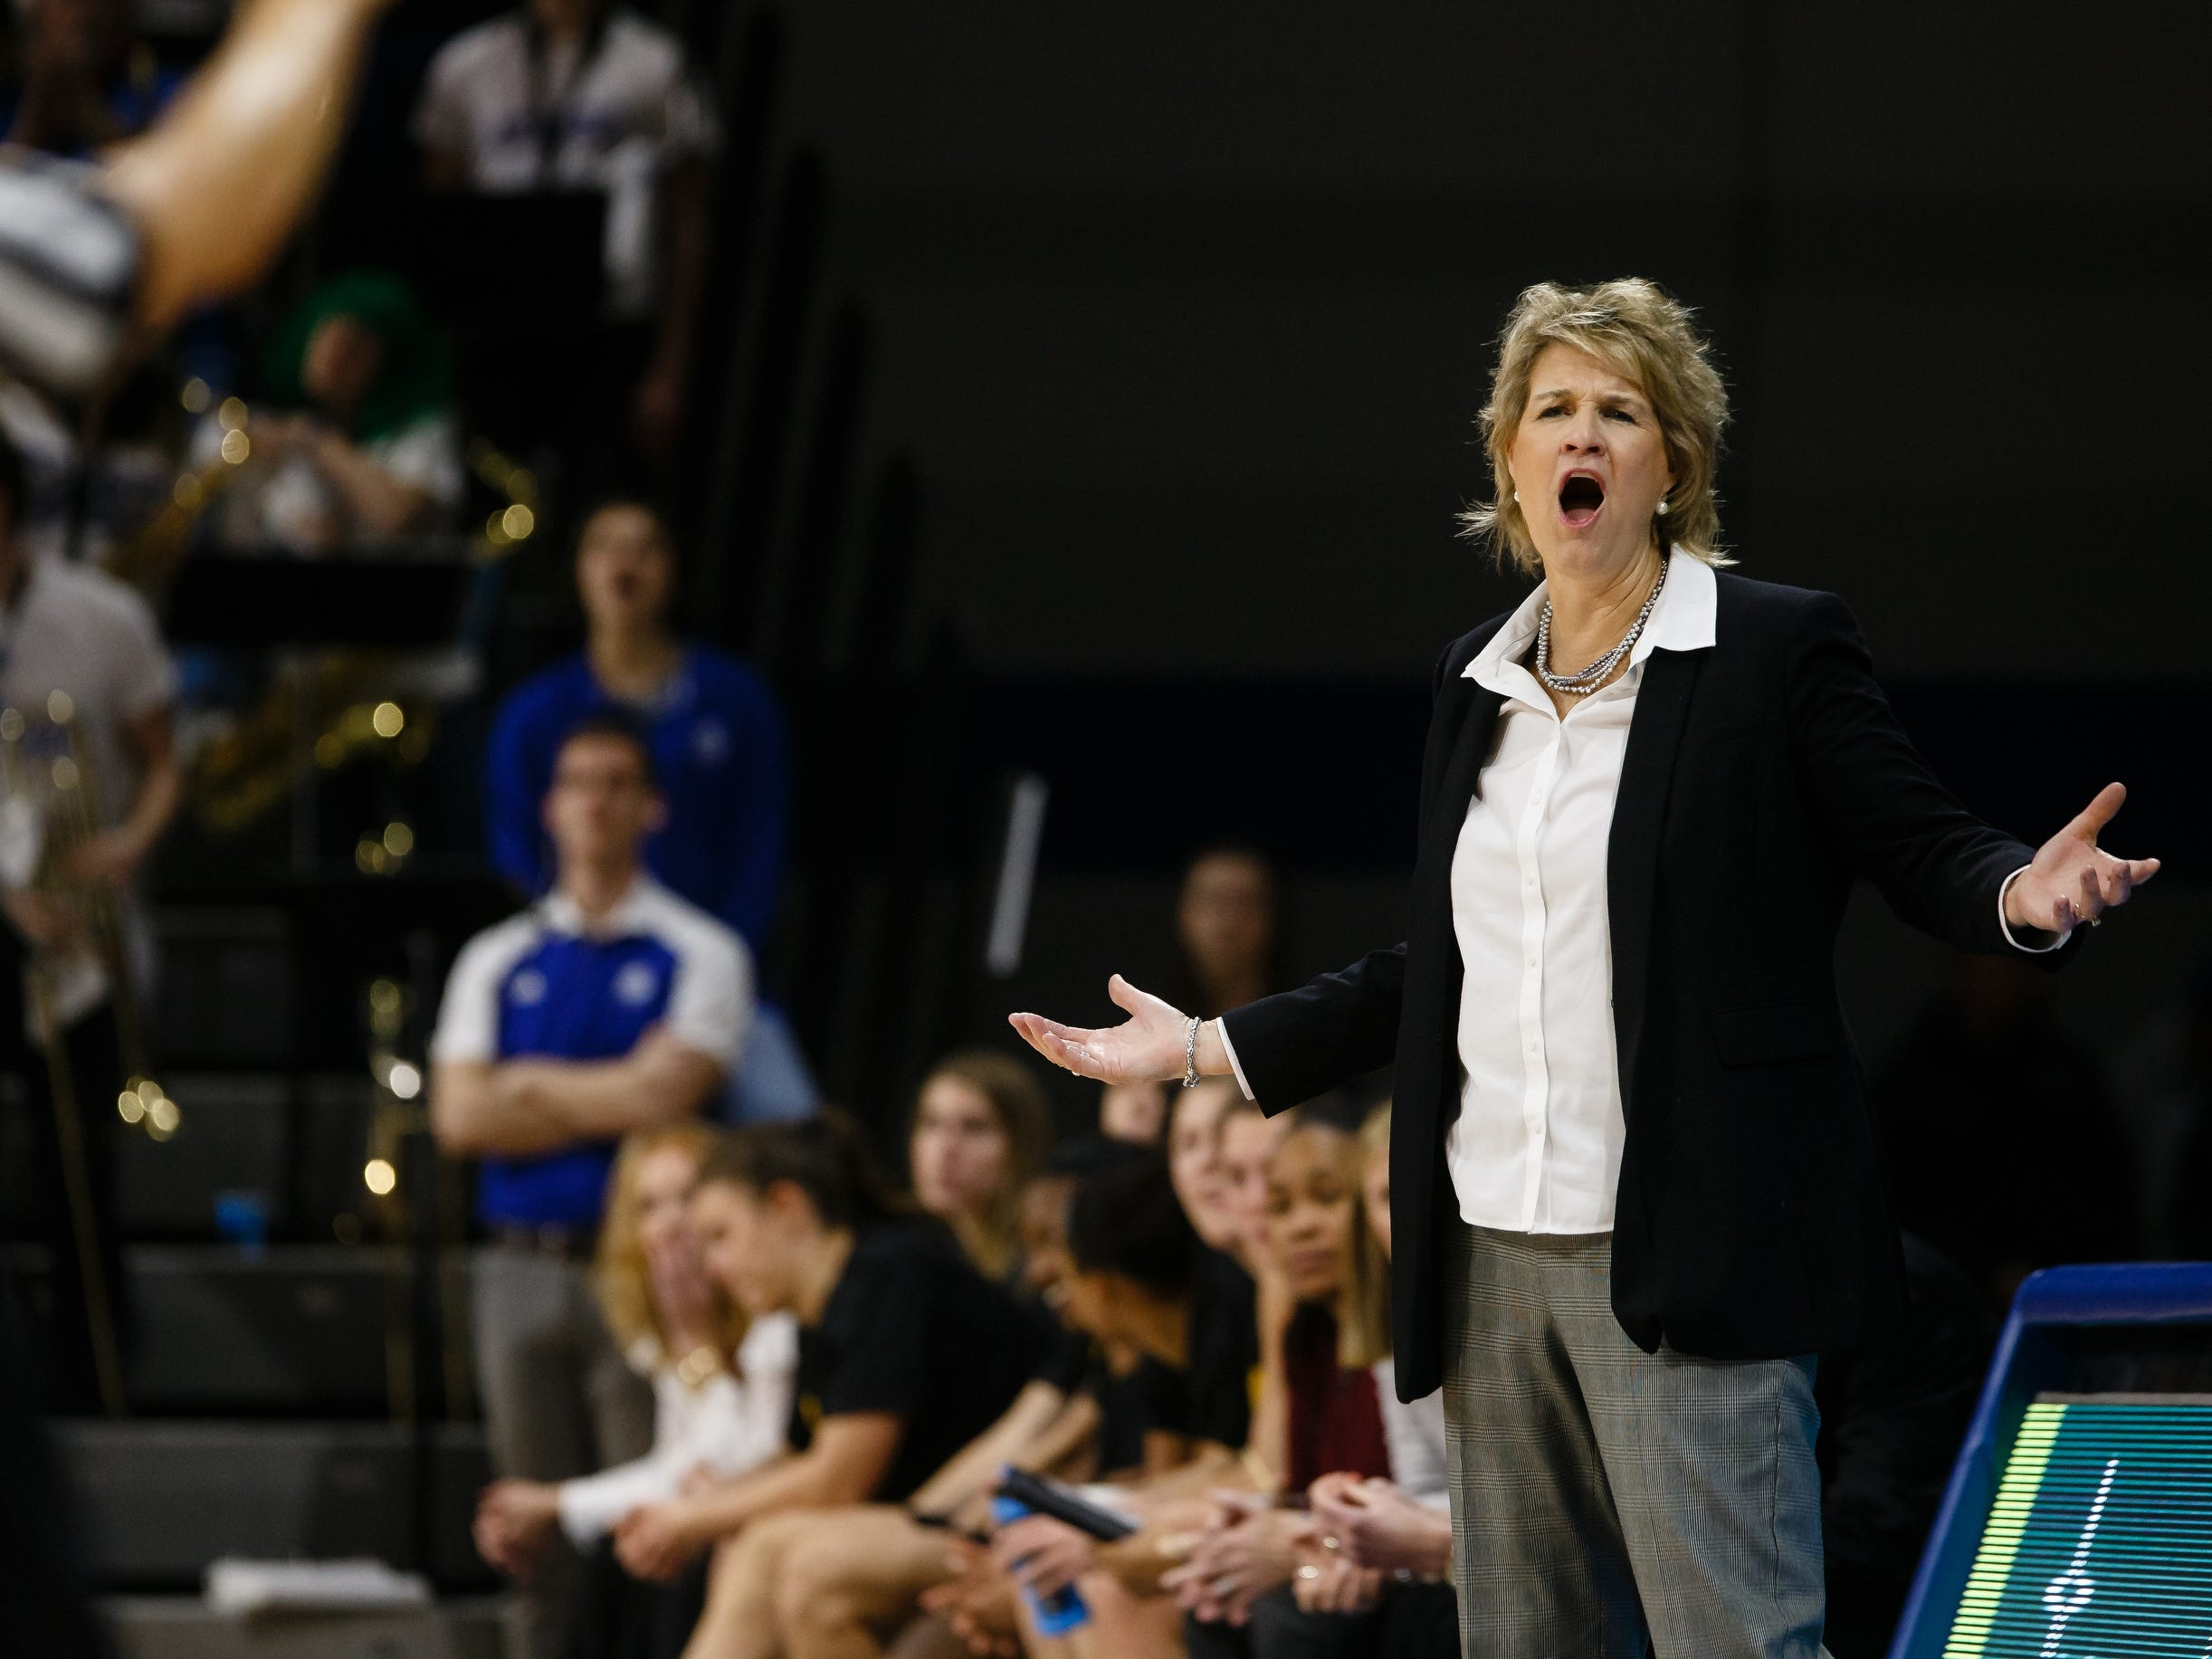 Iowa head coach Lisa Bluder argues a call during their basketball game on Friday, Dec. 21, 2018, in Des Moines. Iowa would go on to defeat Drake 91-82.